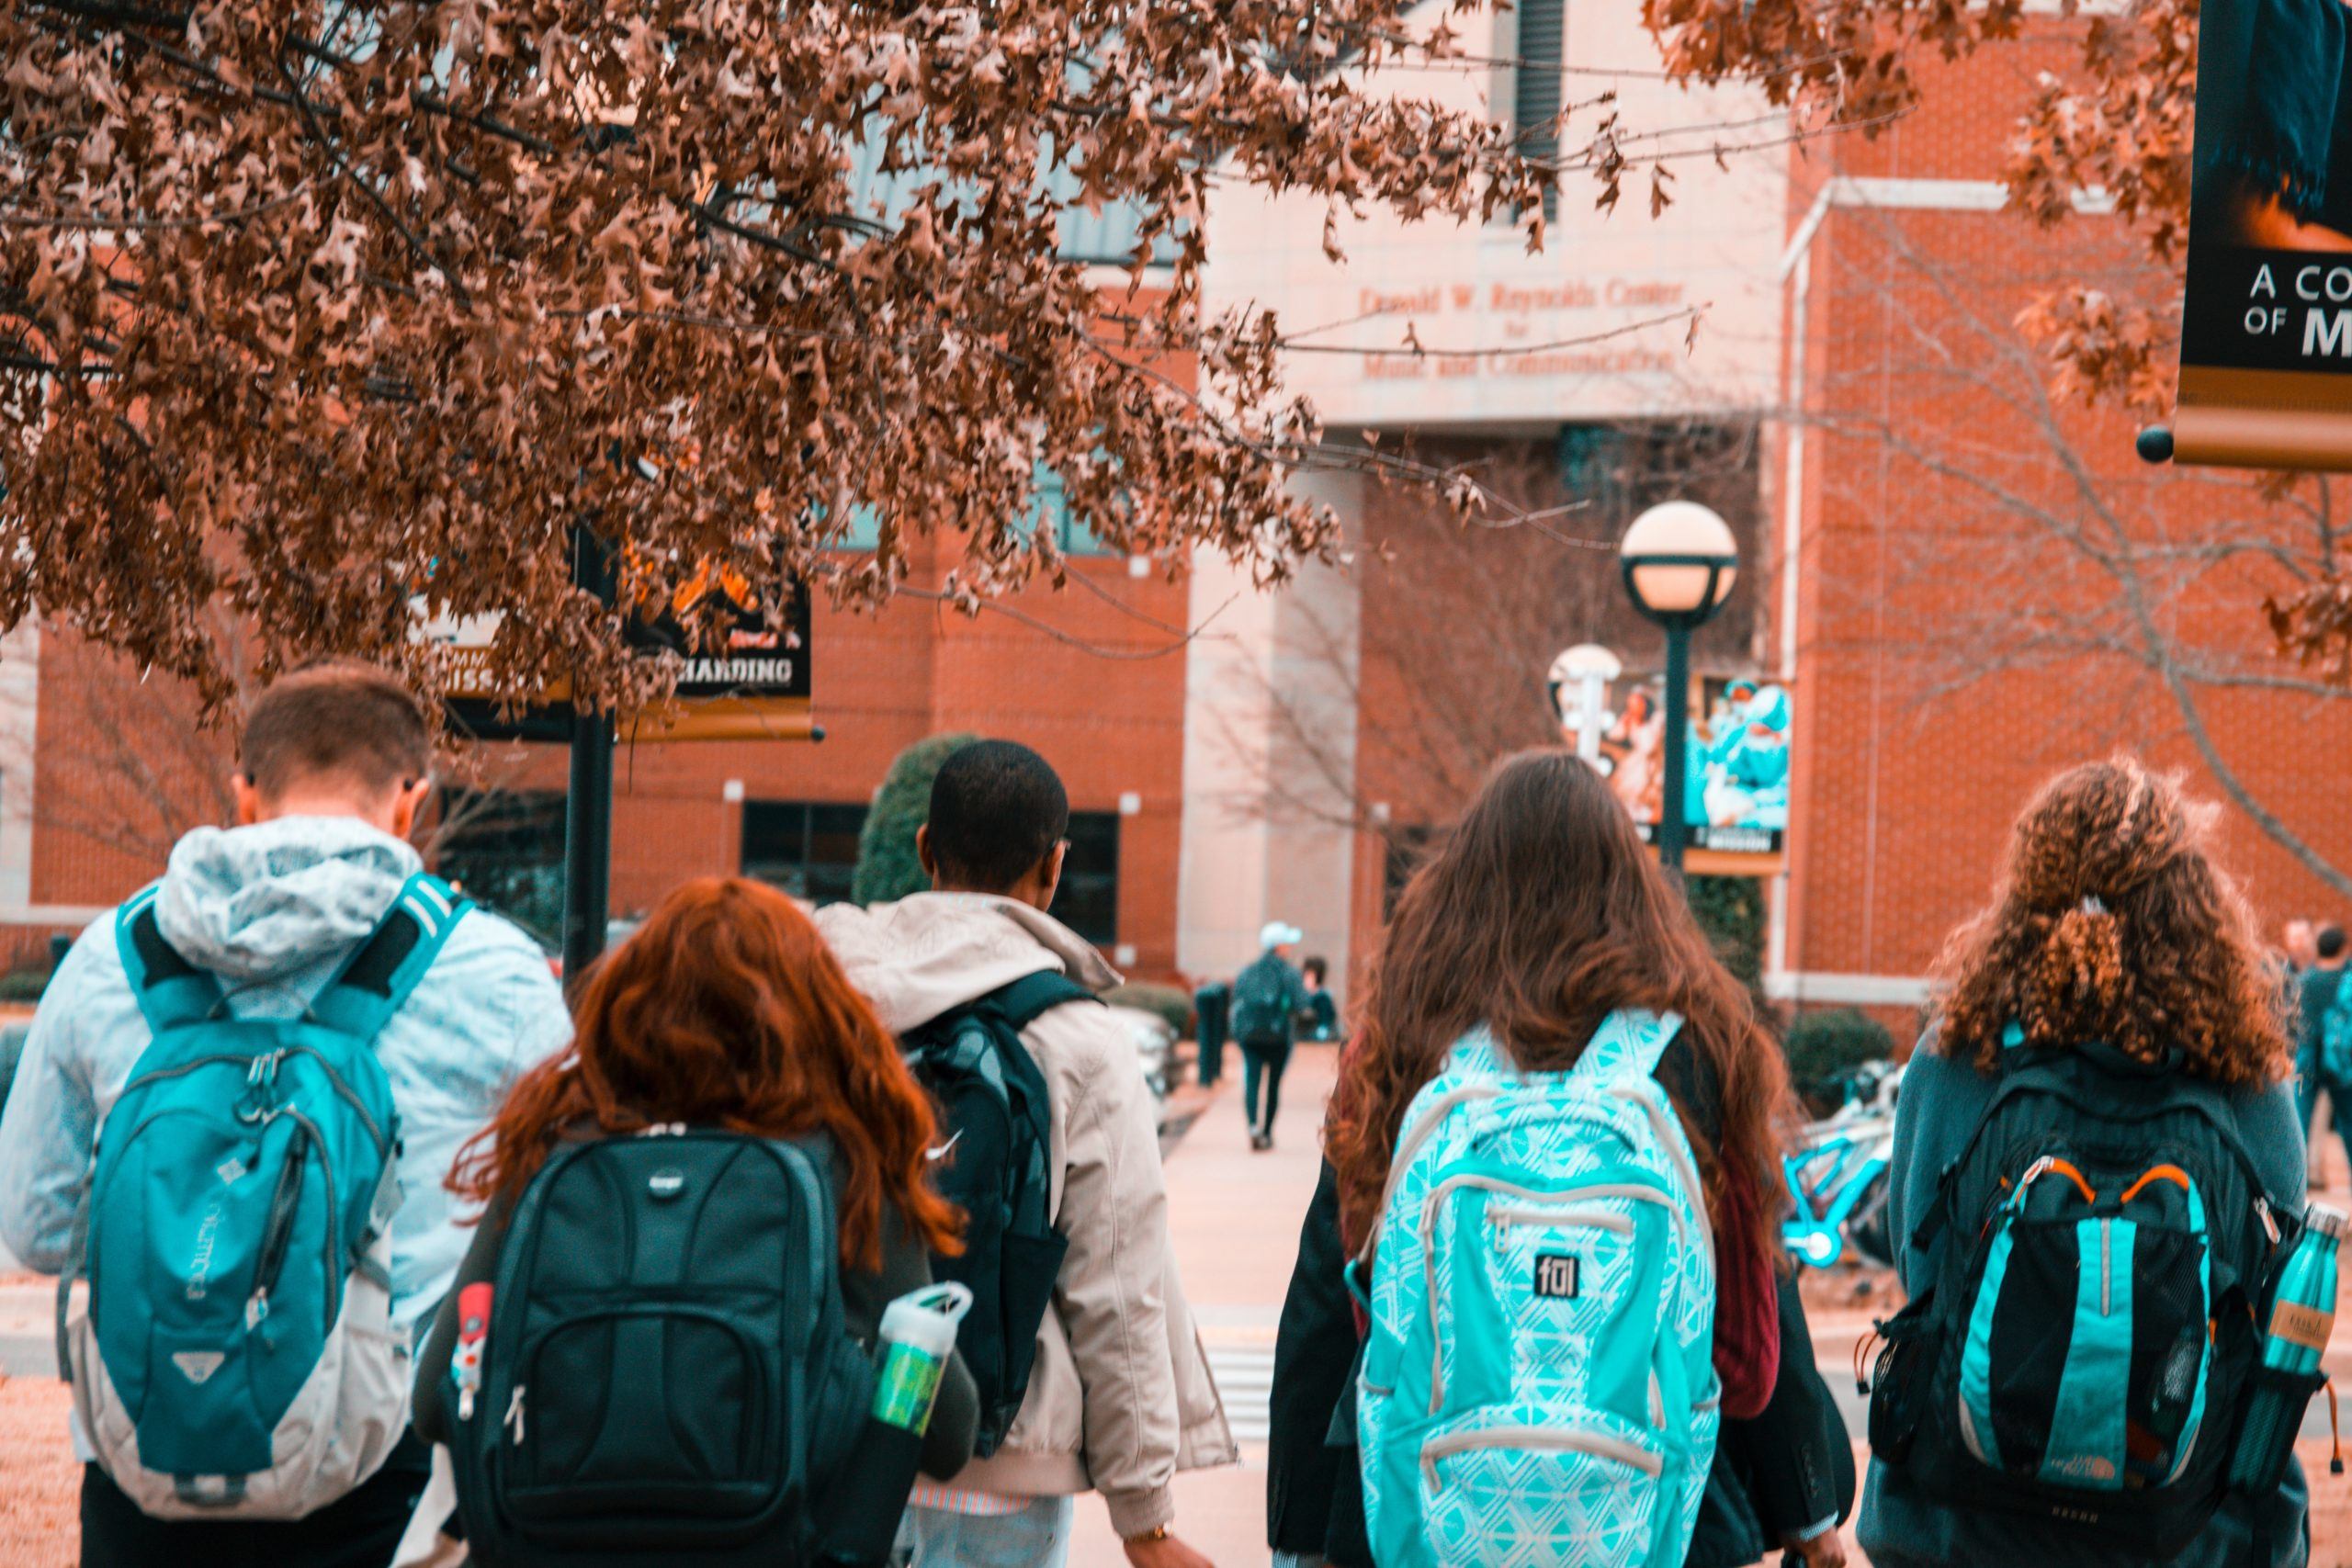 Students walking on a college campus